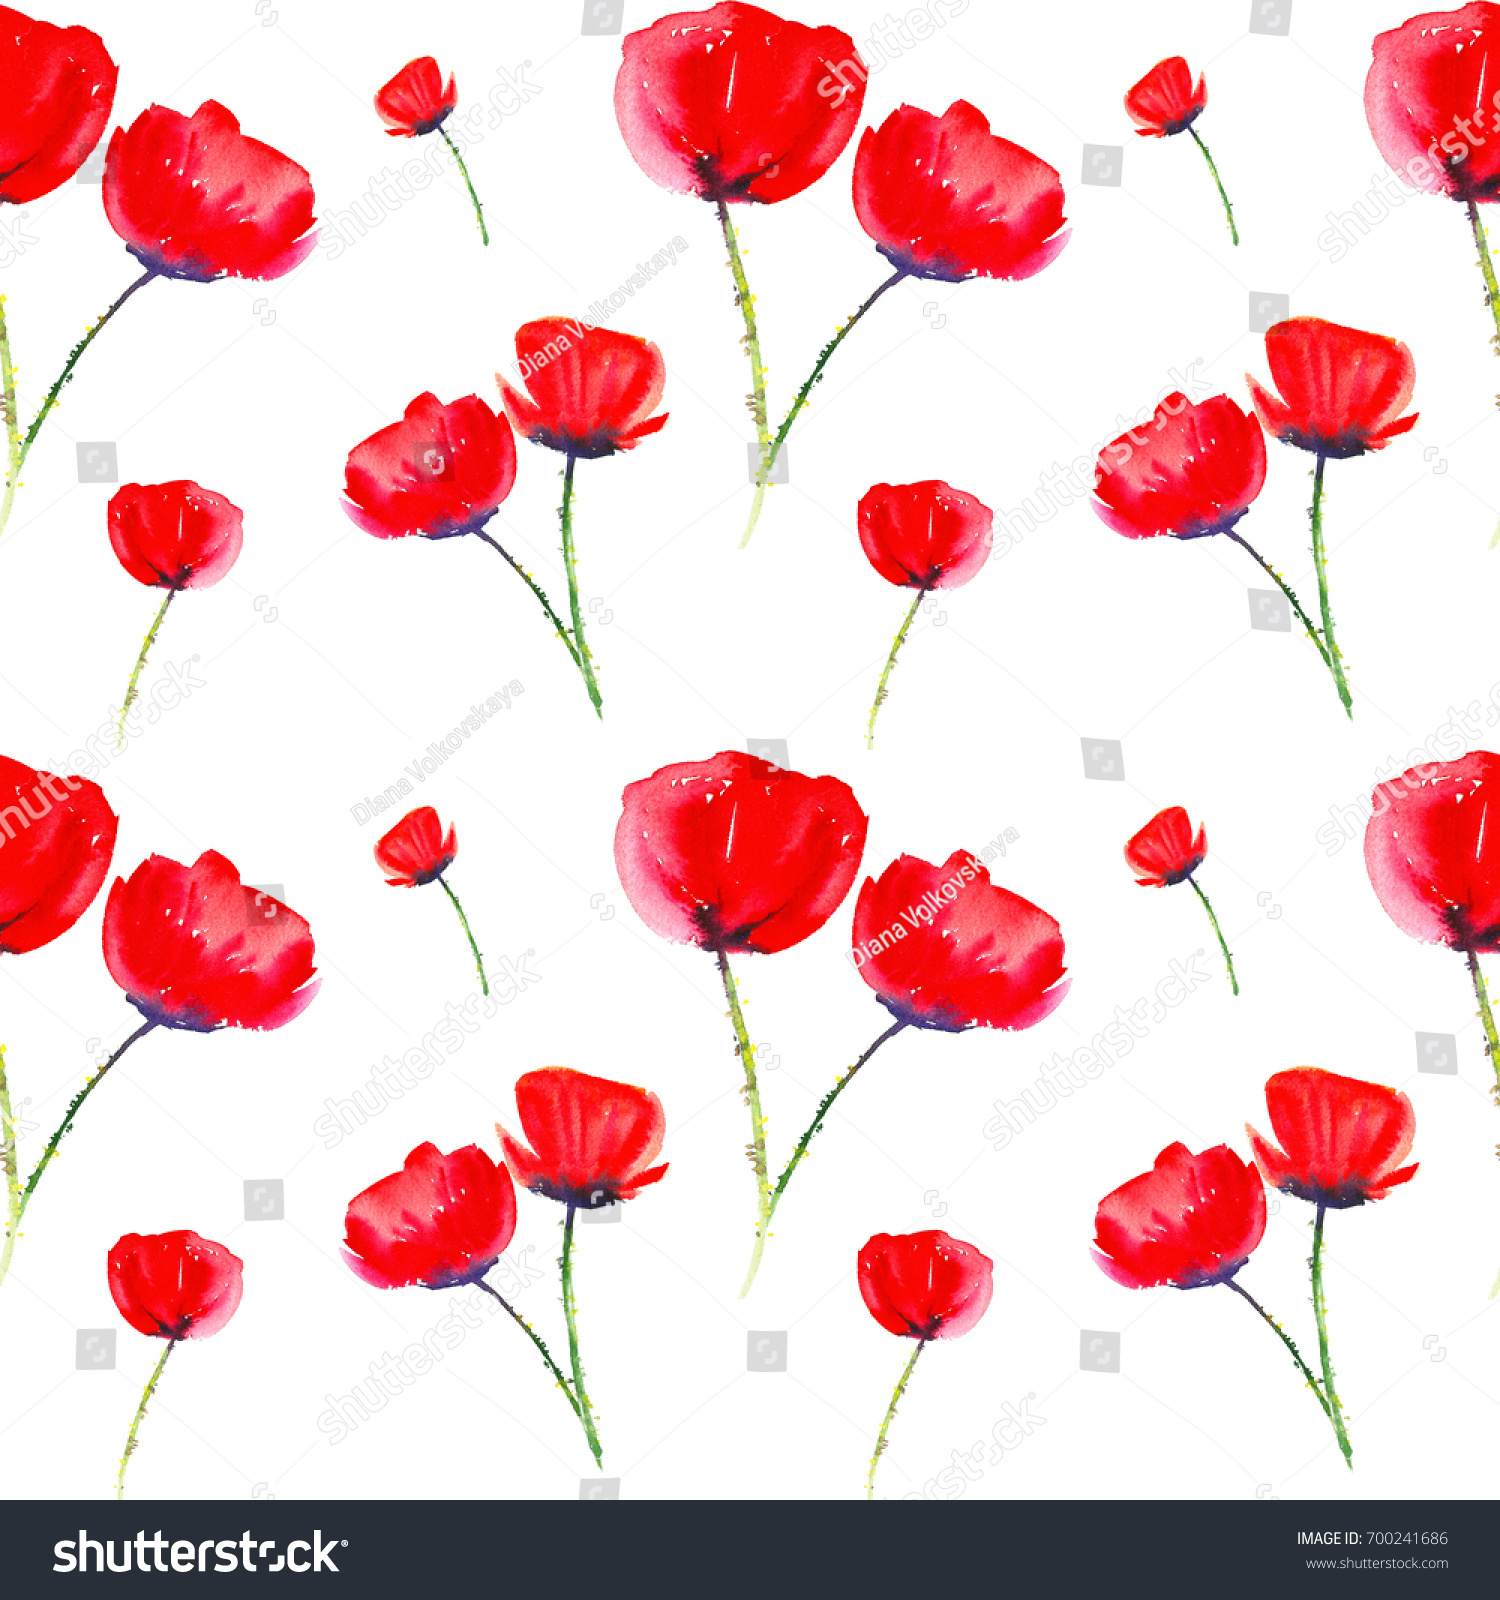 Seamless Red Poppies Watercolor Painting Poppy Stock Illustration